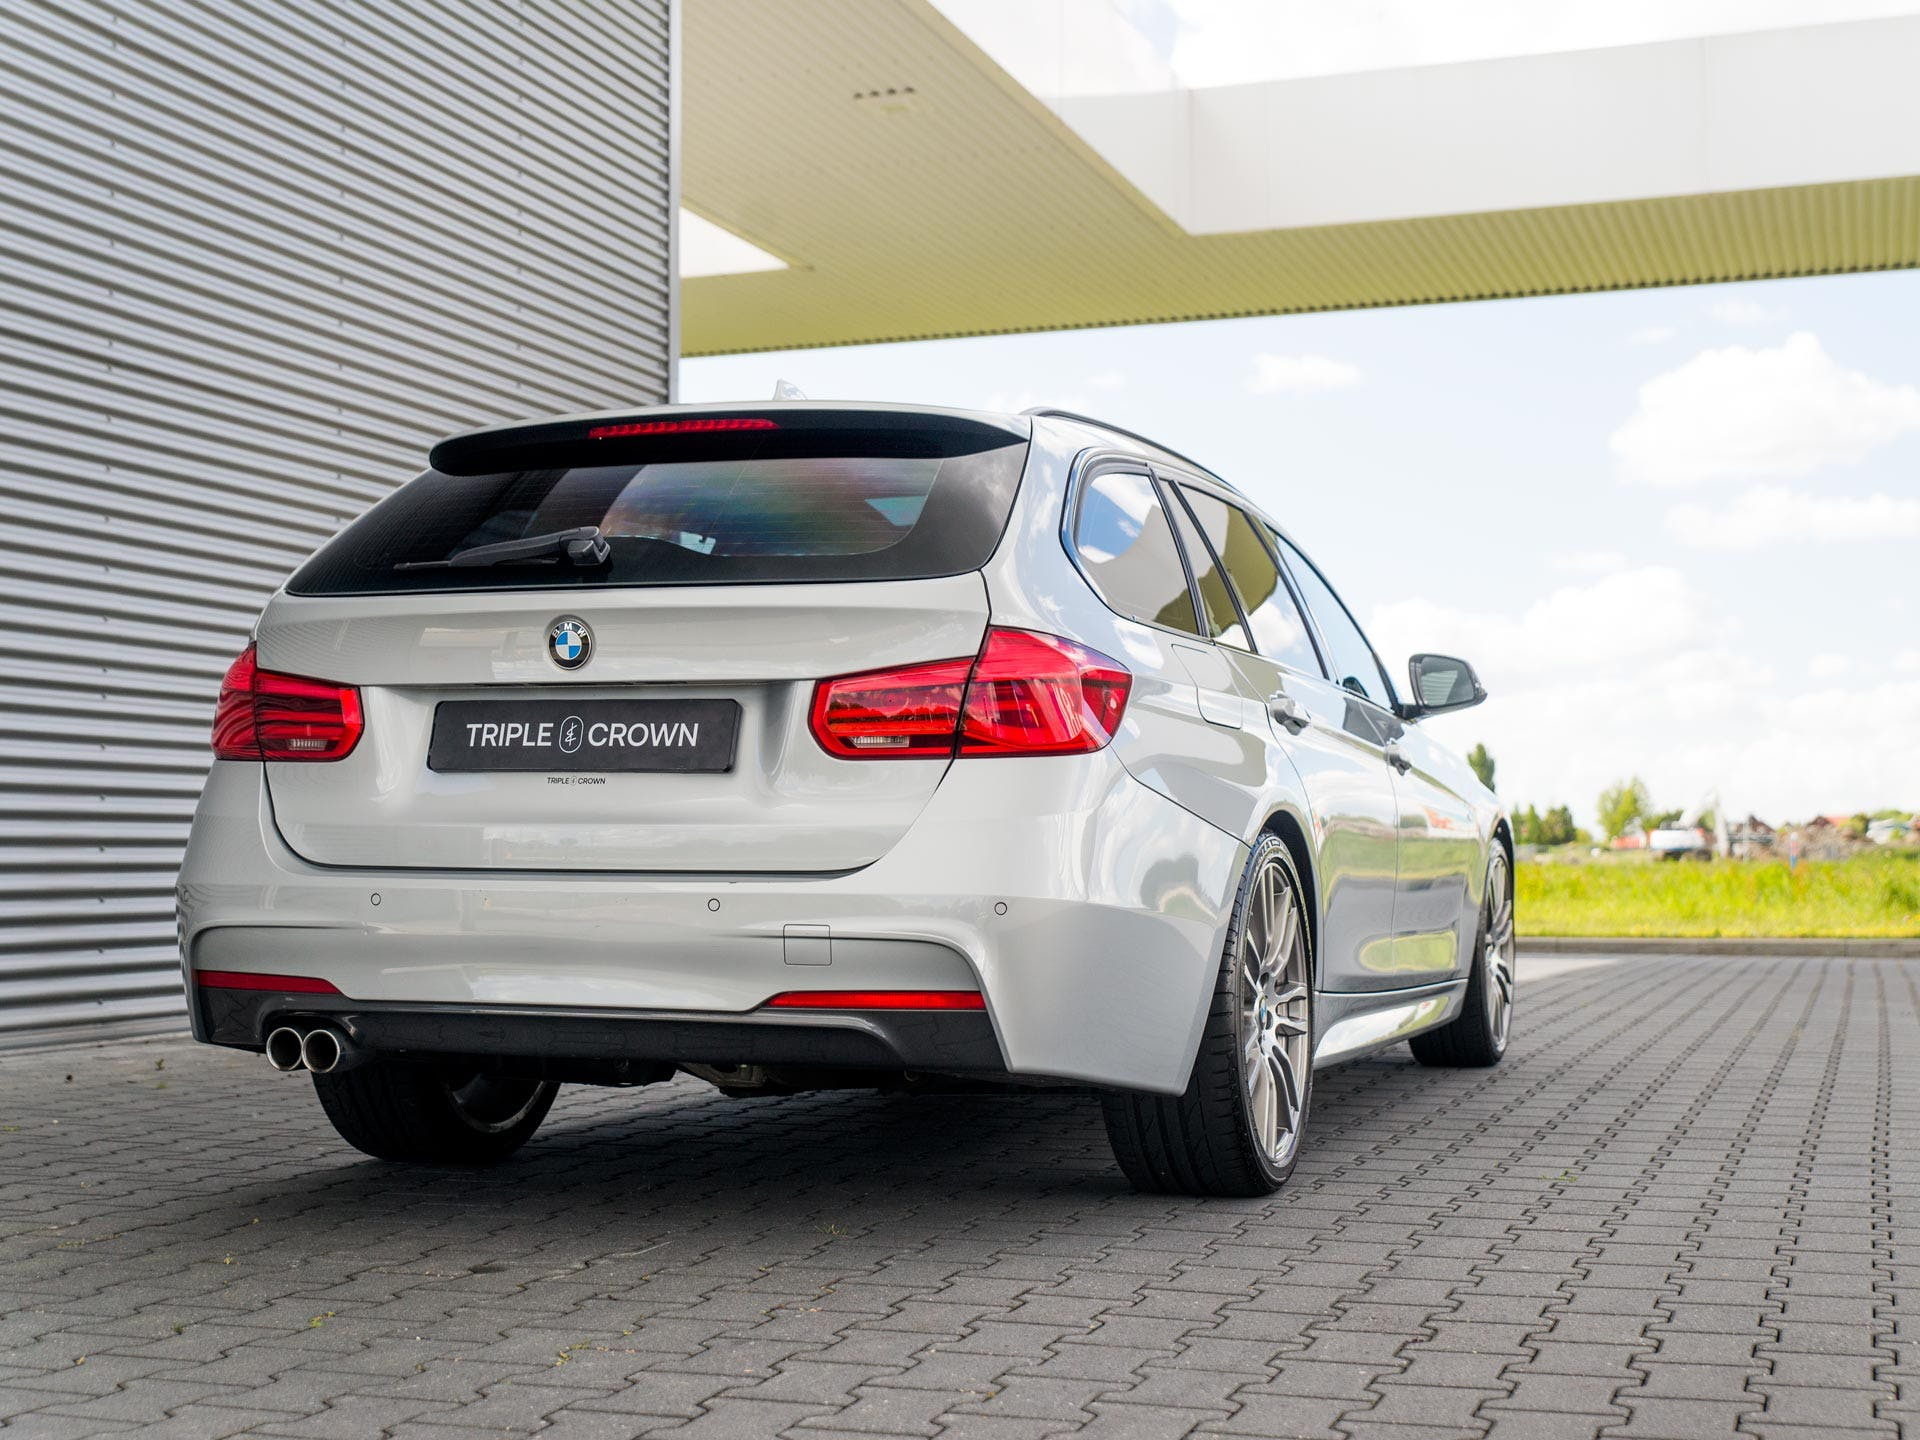 Tweedehands BMW 3 Serie Touring M-Sport occasion